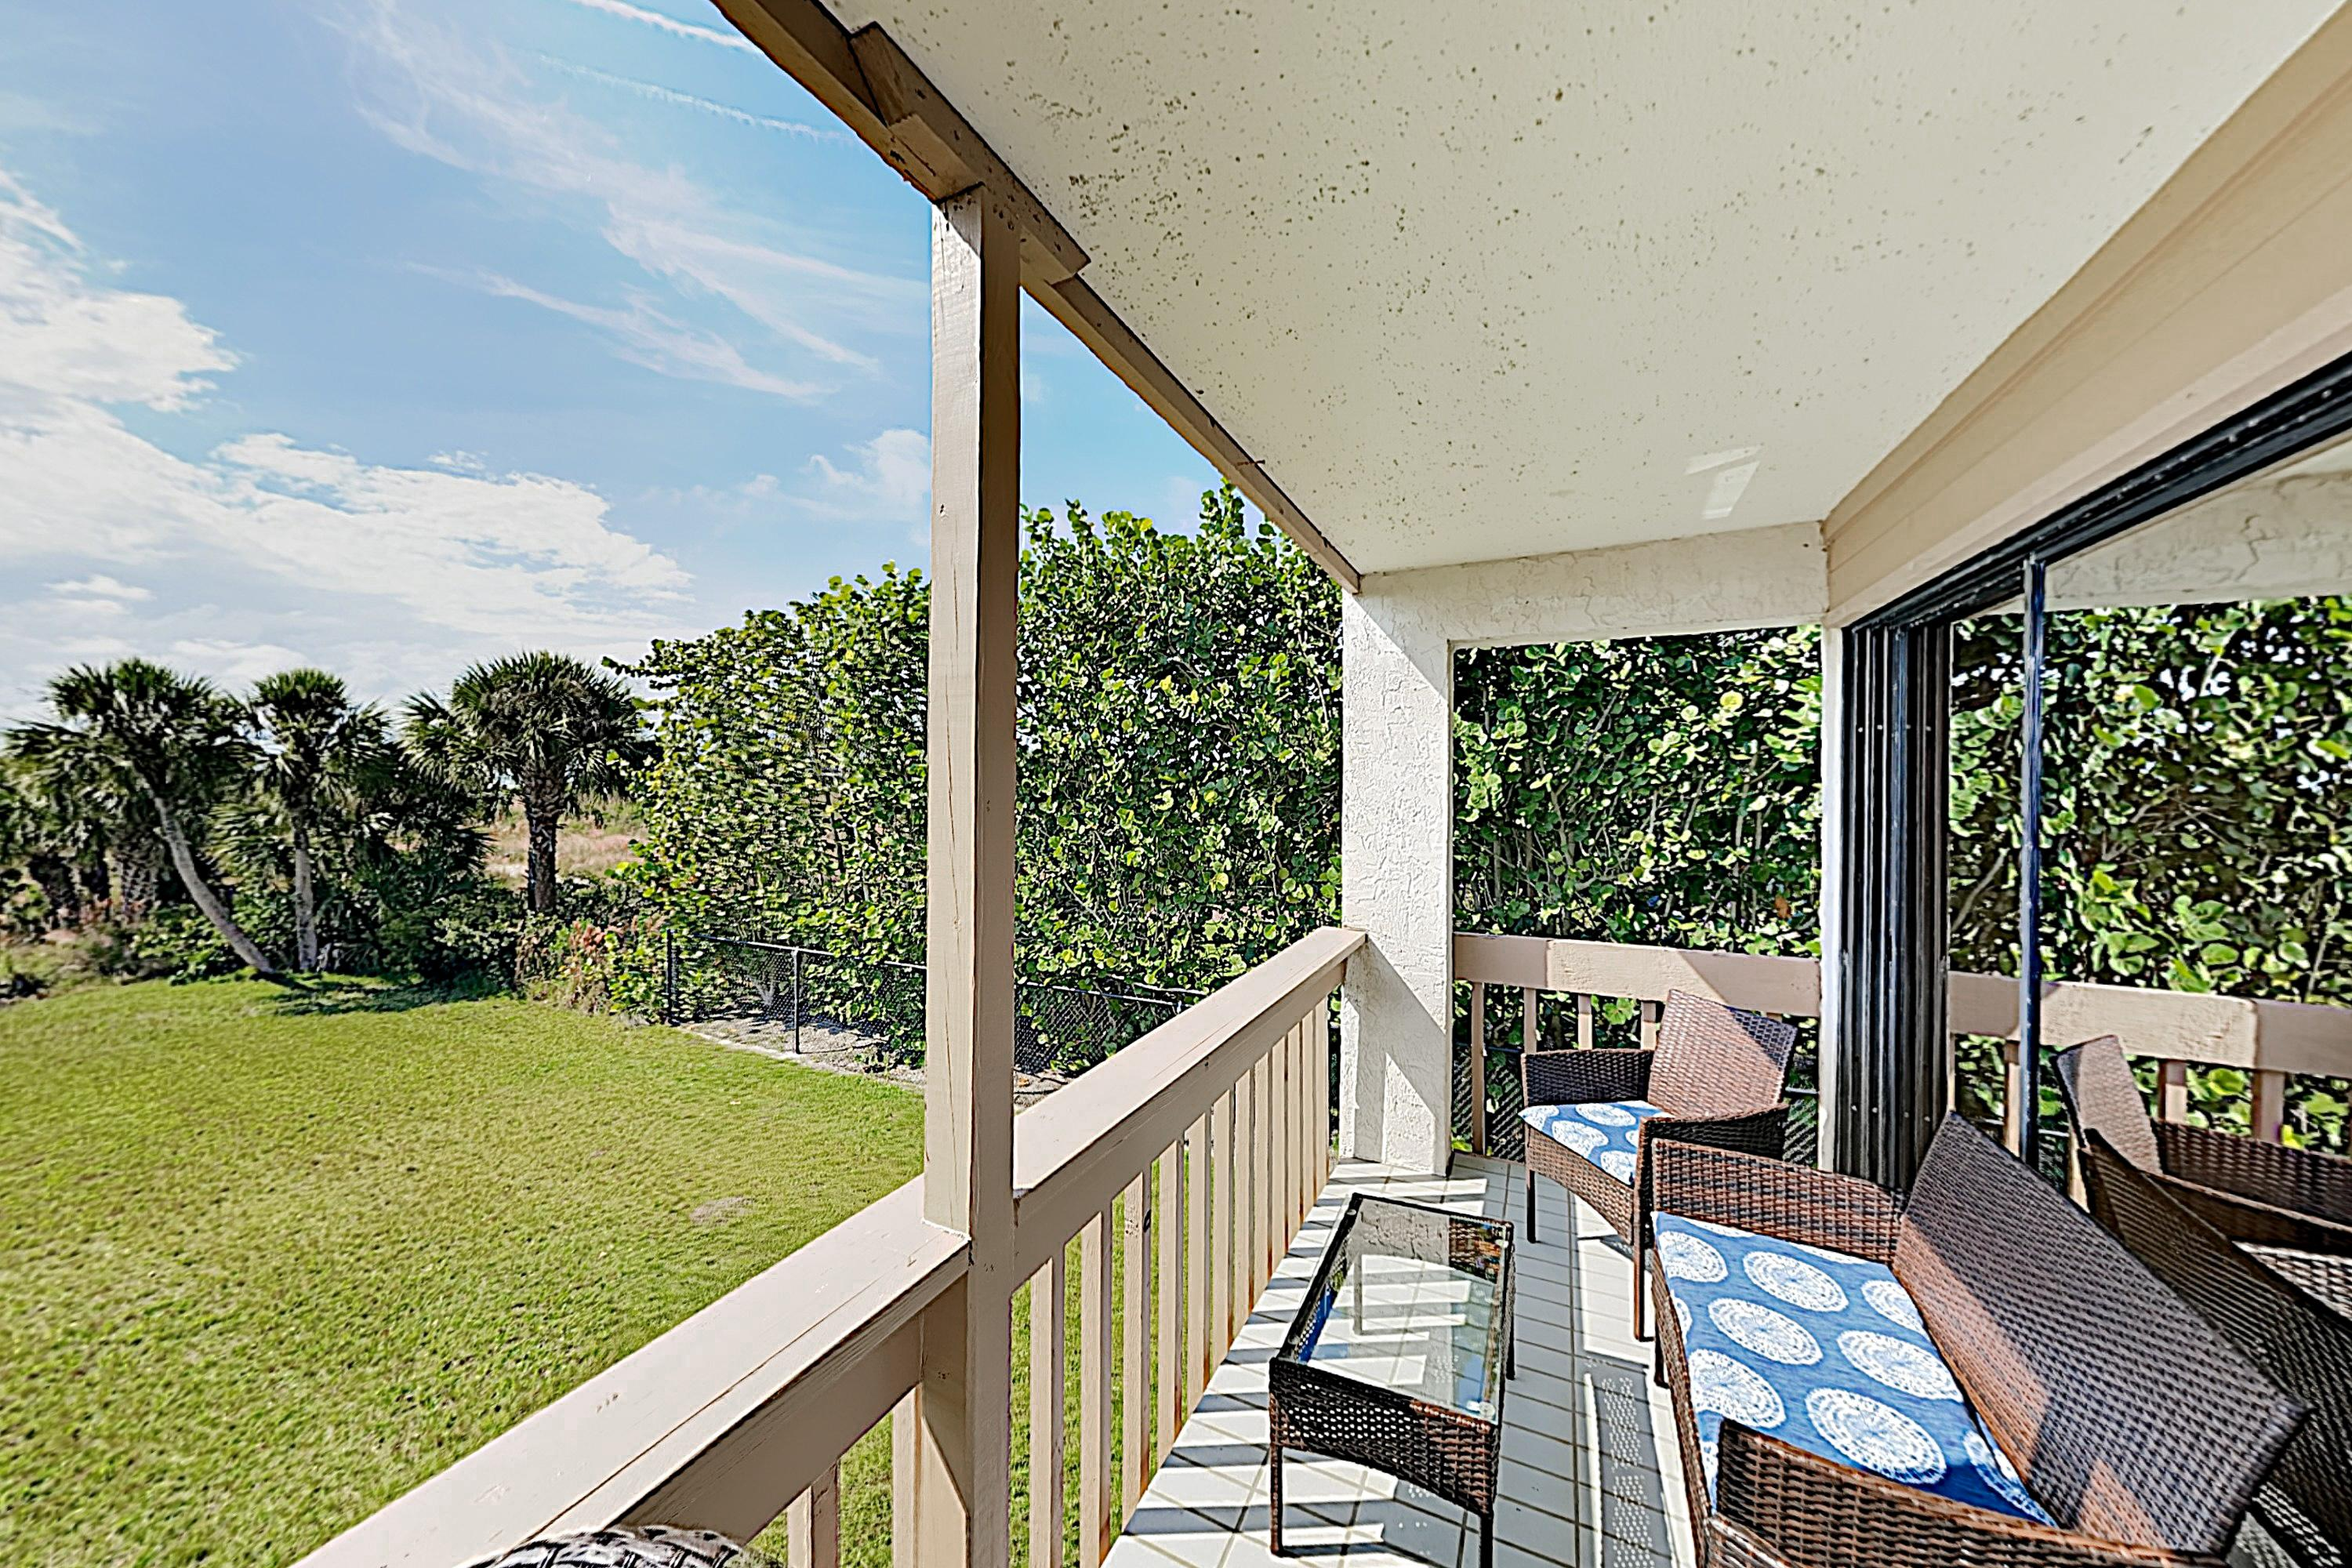 The balcony offers ample space to relax with a crisp beverage.